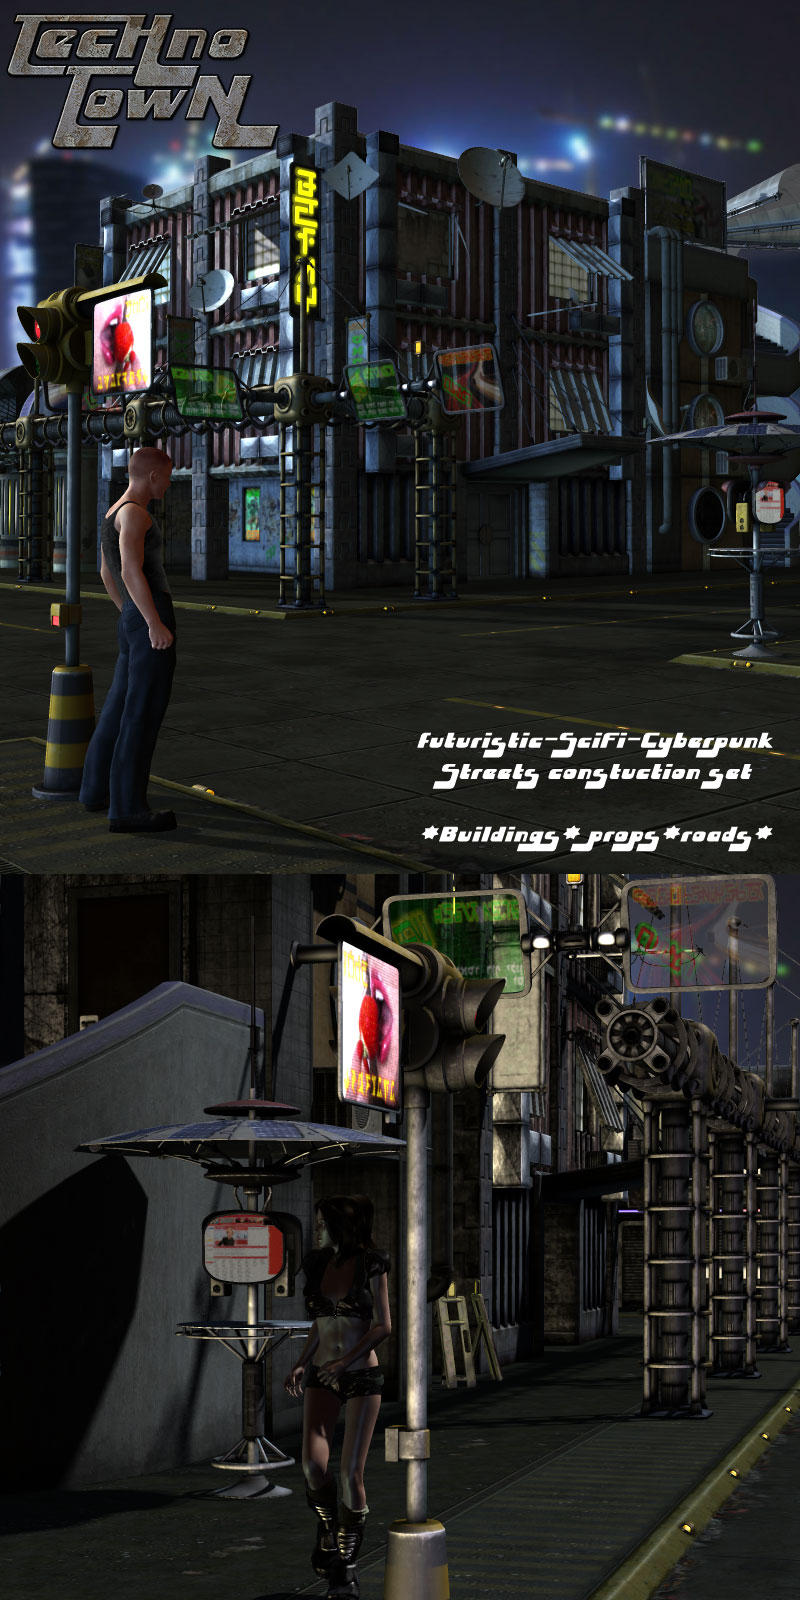 Techno Town Construction Set Vol 1 - Extended License